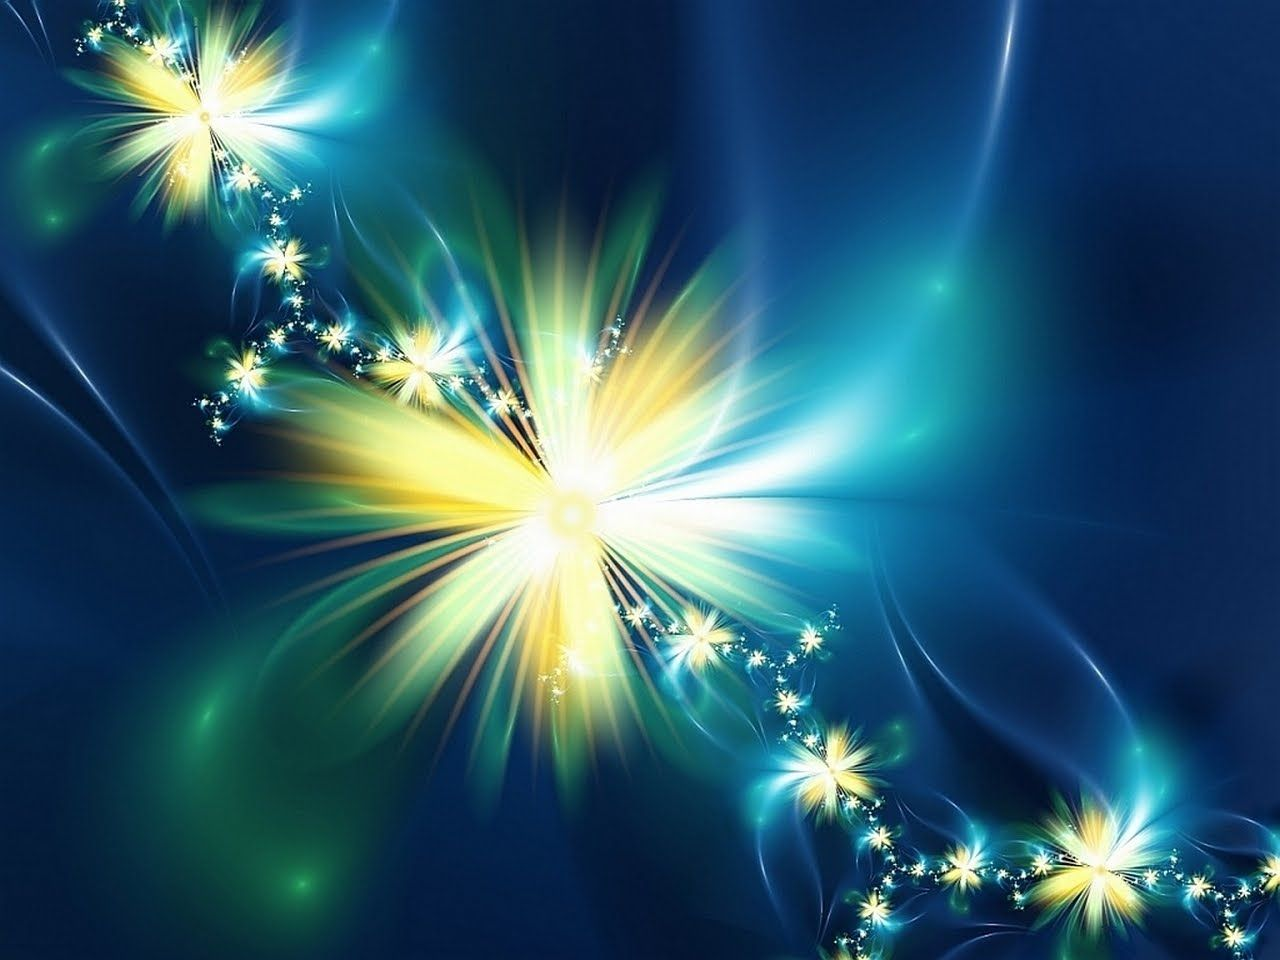 50 best colorful wallpapers images on pinterest | colors, 3d